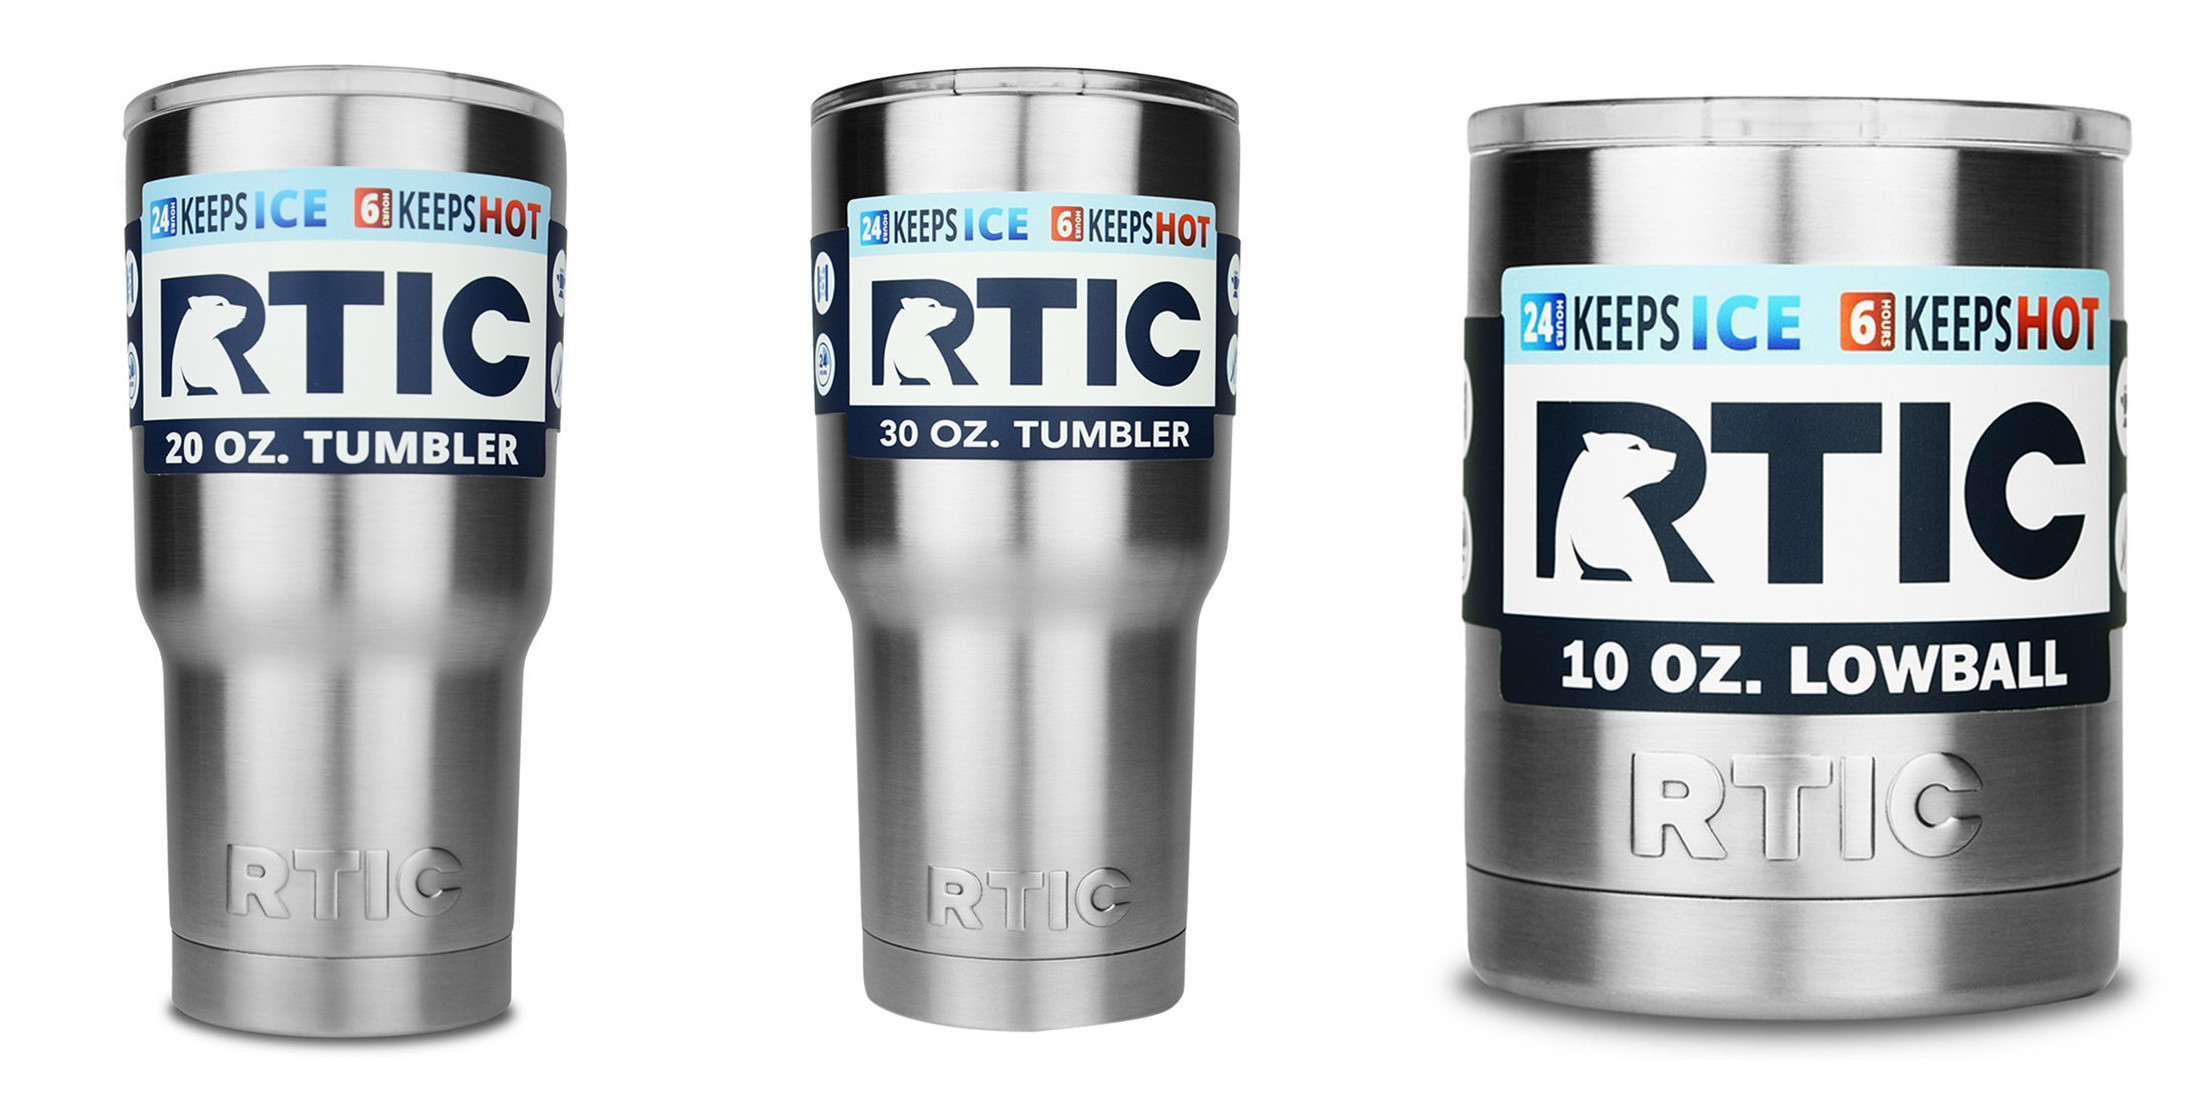 rtic-stainless-steel-tumblers-5